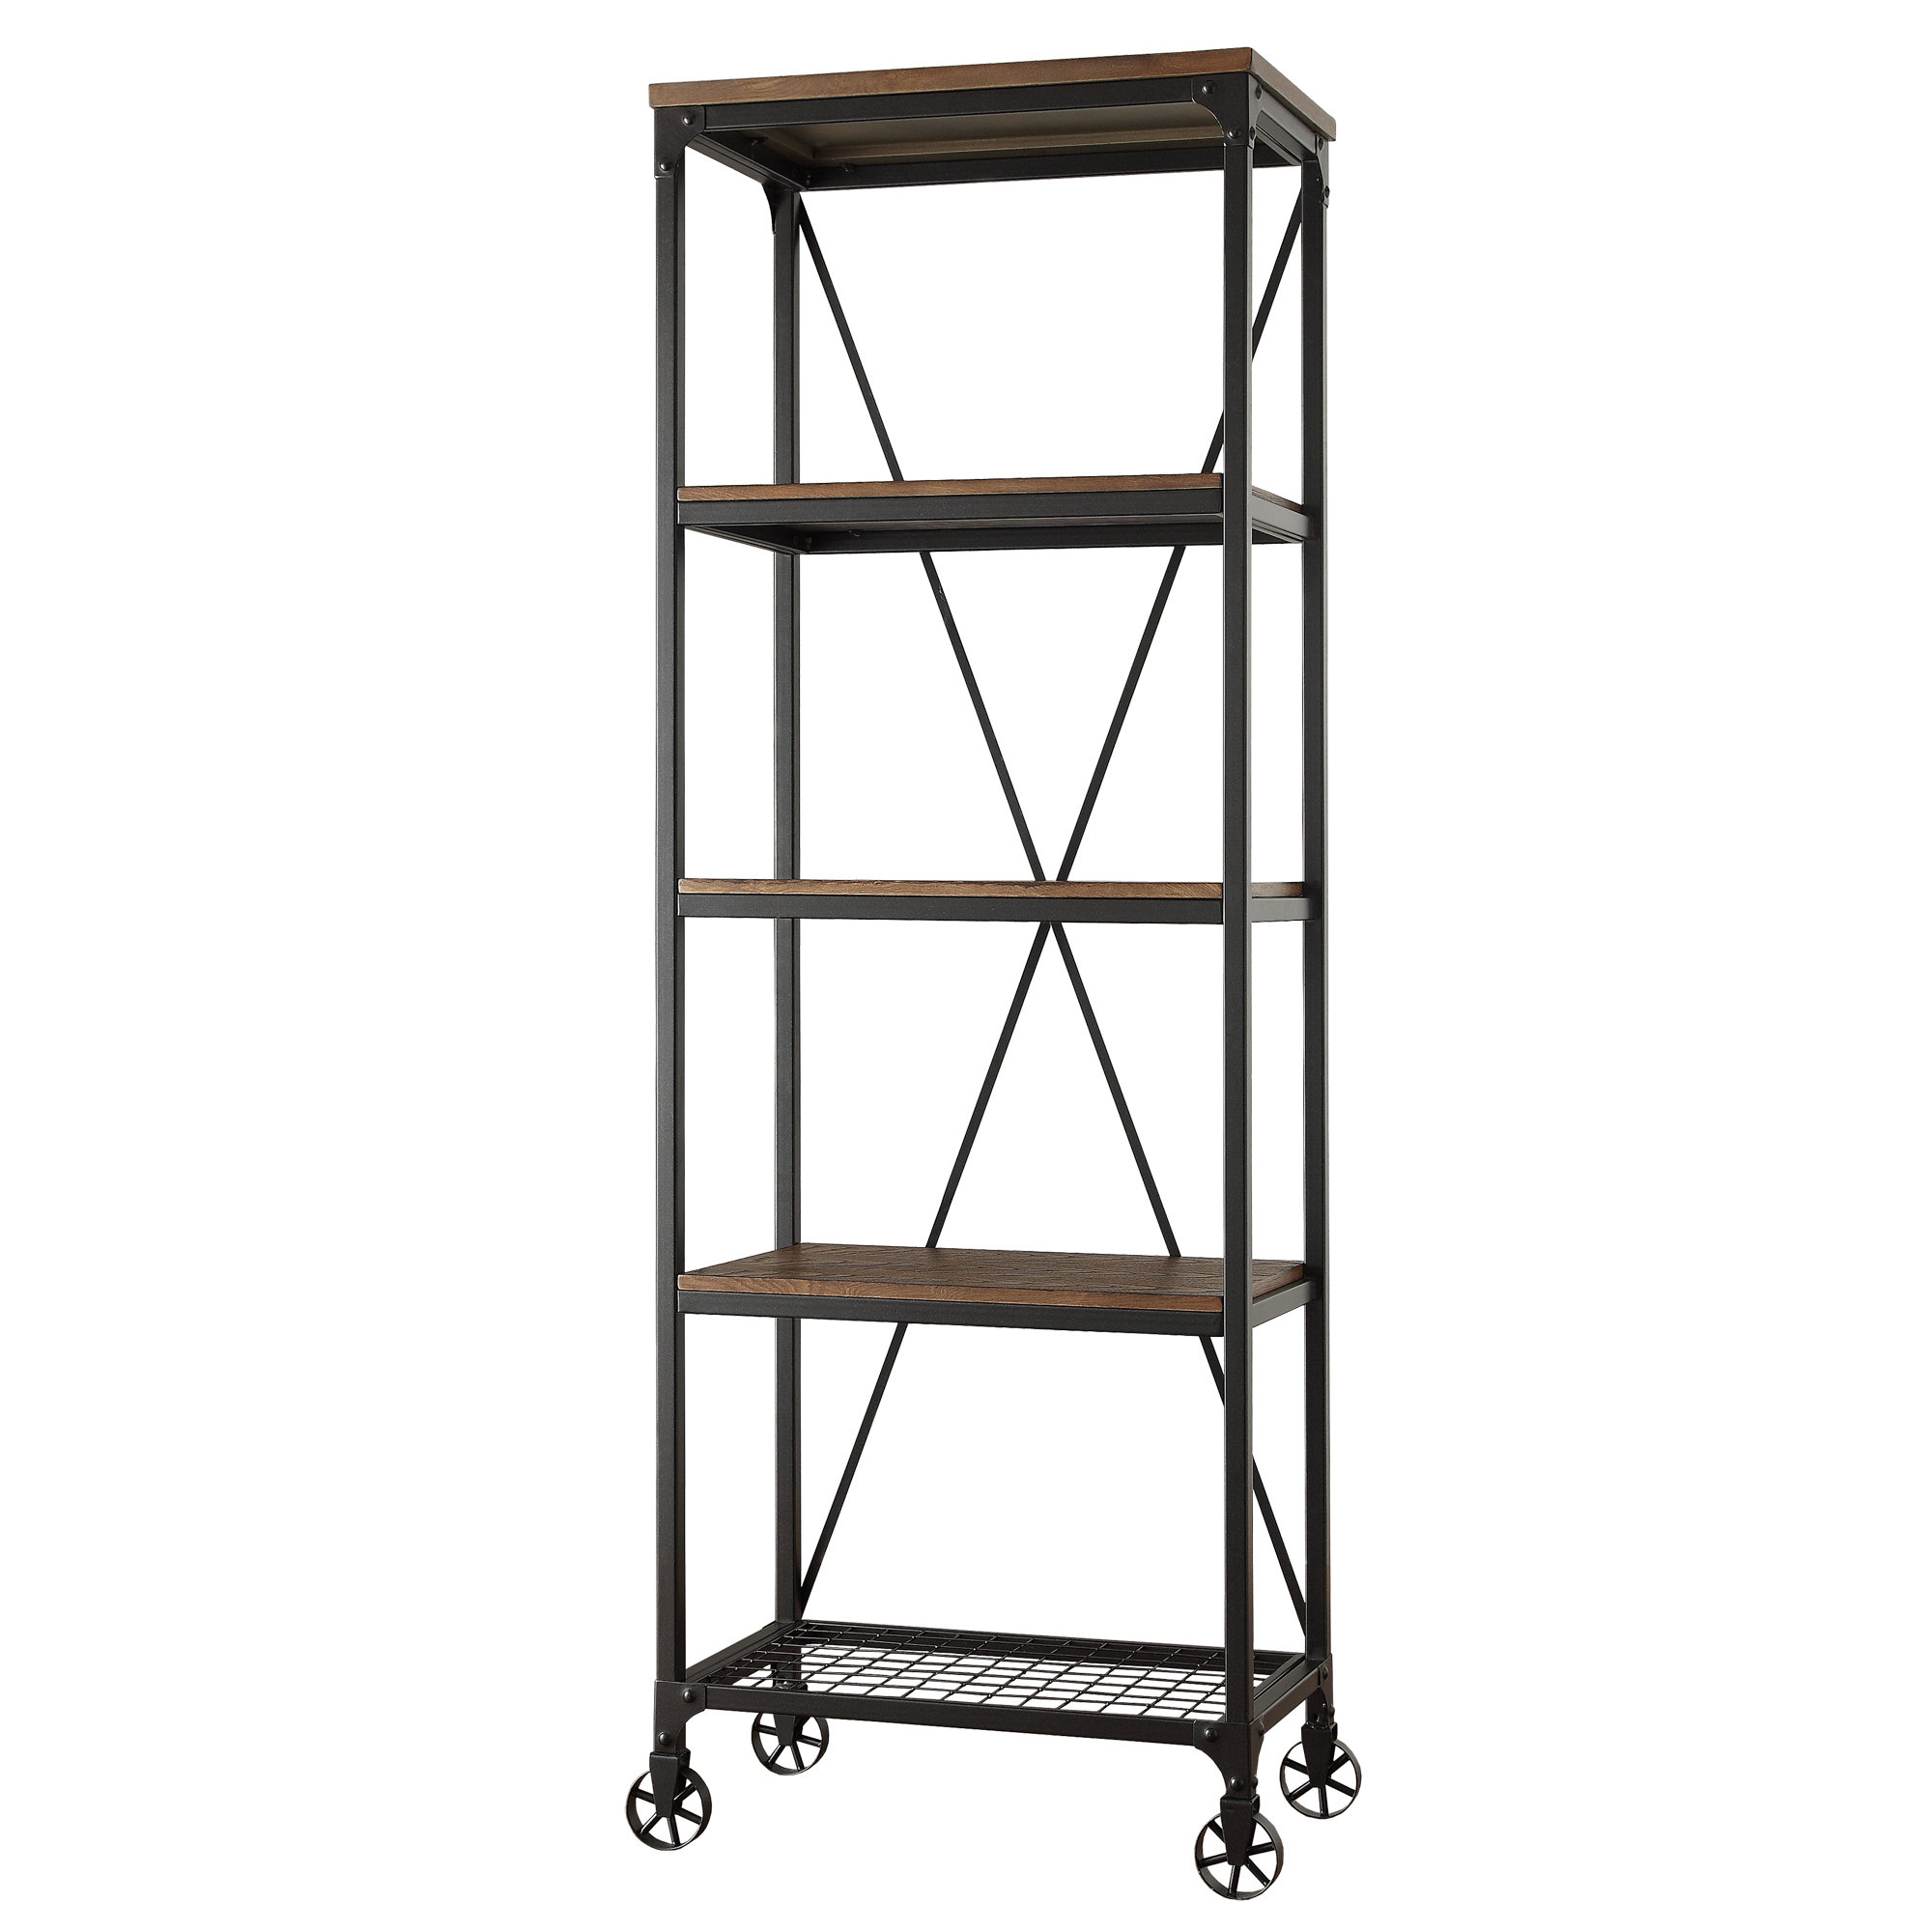 Hera Etagere Bookcases In Widely Used Cable Etagere Bookcase (View 5 of 20)